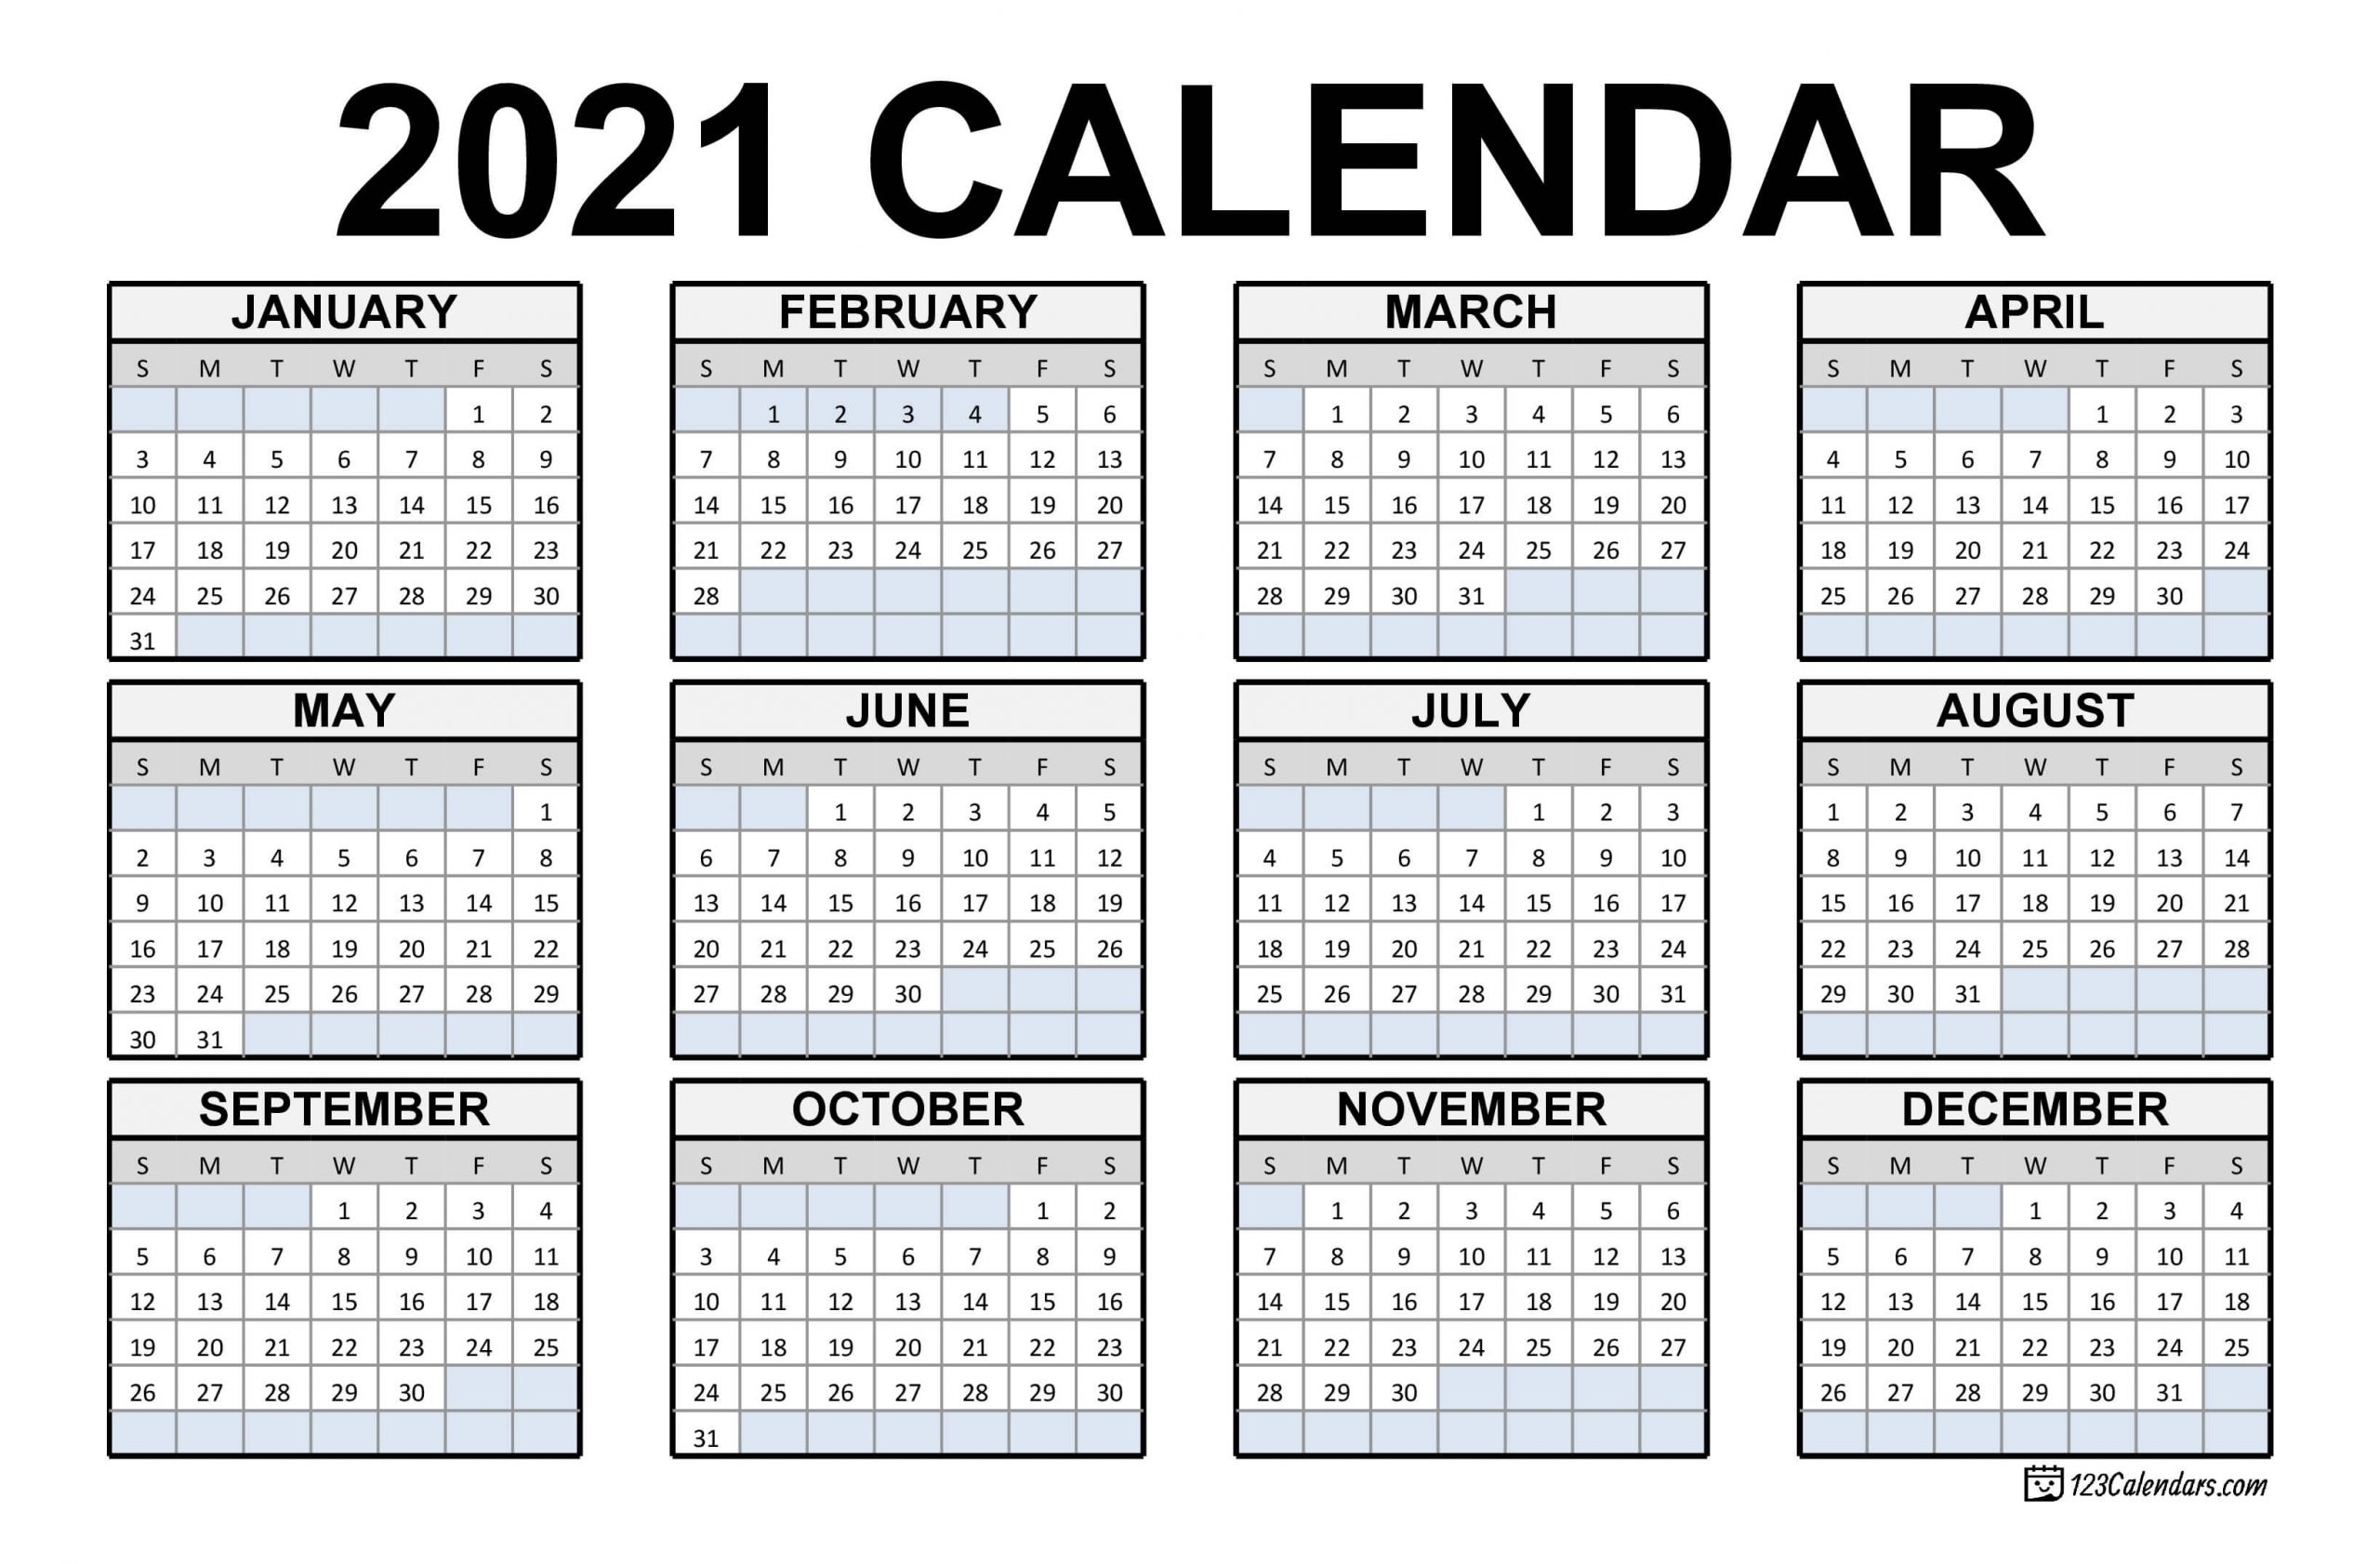 2021 Printable Calendar | 123Calendars for Printable Calendars 2020 Pocket Size